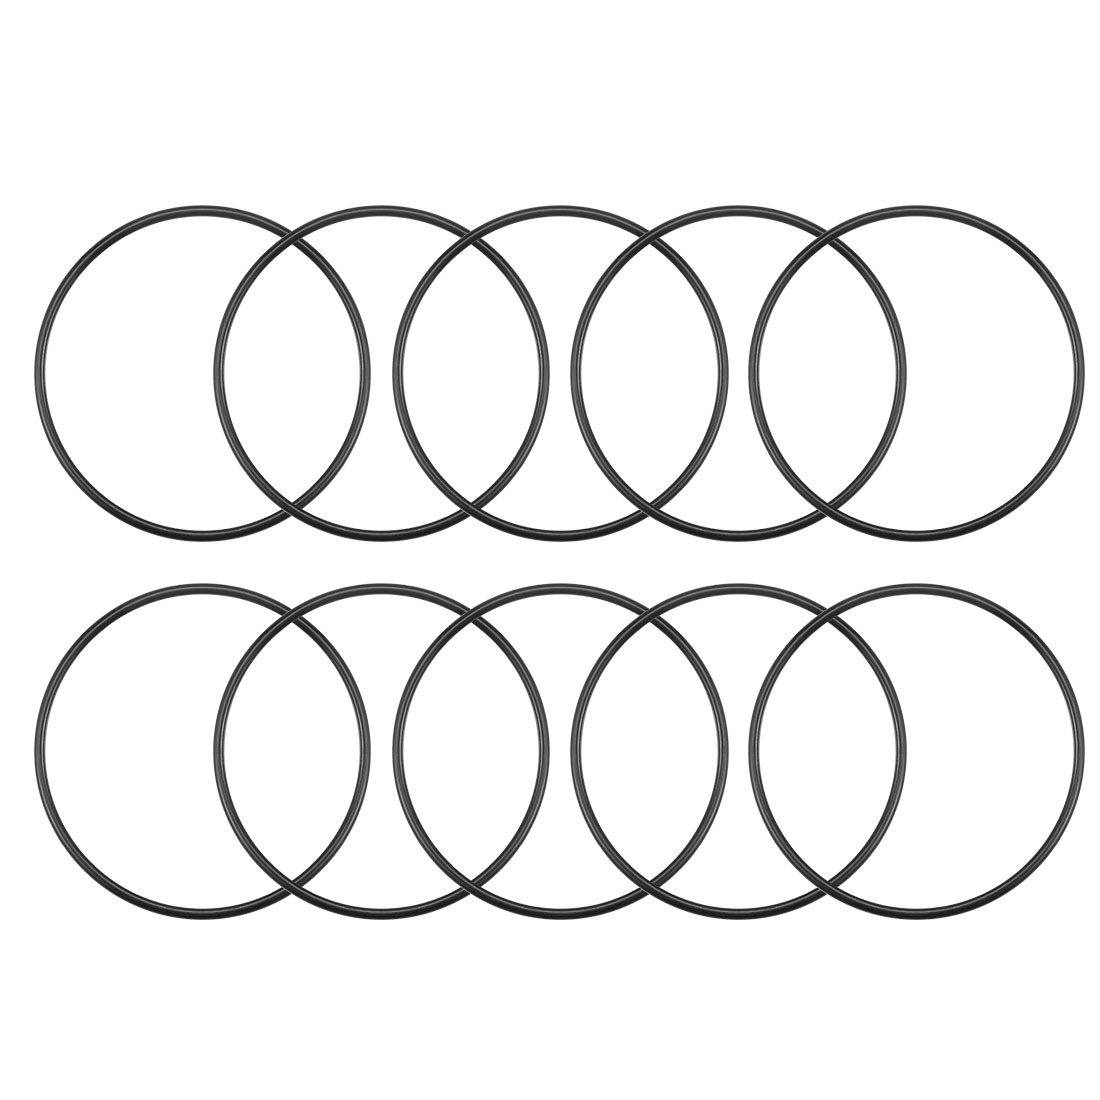 O-Rings Nitrile Rubber 50mm x 53.6mm x 1.8mm Round Seal Gasket 10Pcs